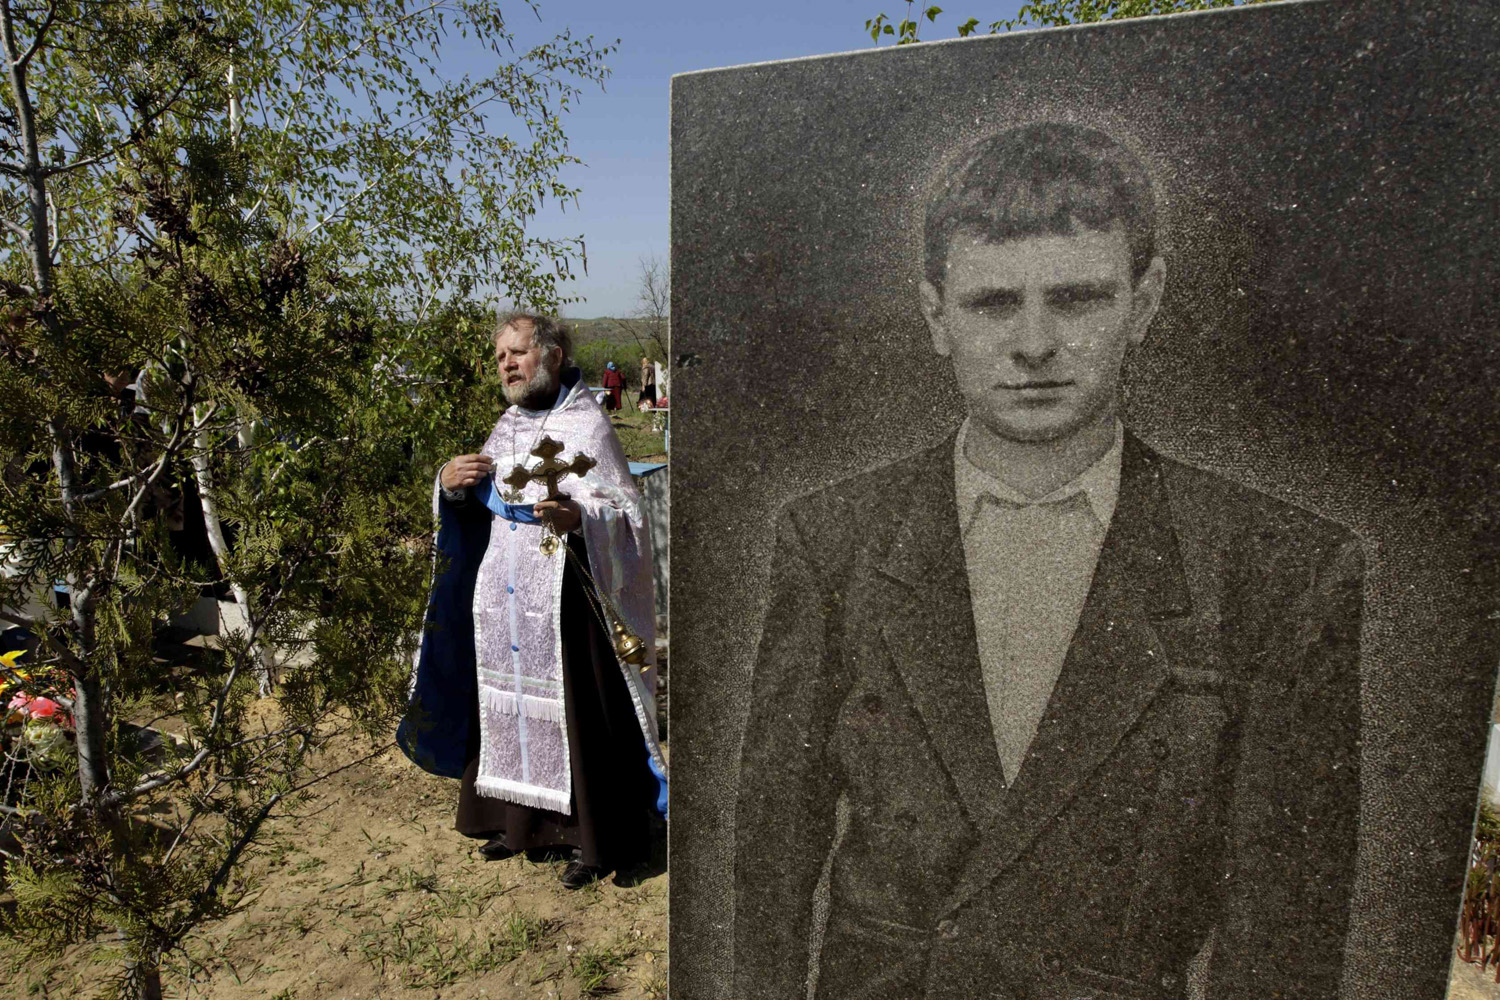 Apr. 27, 2014. An Orthodox priest walks past a portrait of a man on a grave, as he conducts a service in a cemetery near the village of Zimogorie, on the outskirts of Luhansk, eastern Ukraine.